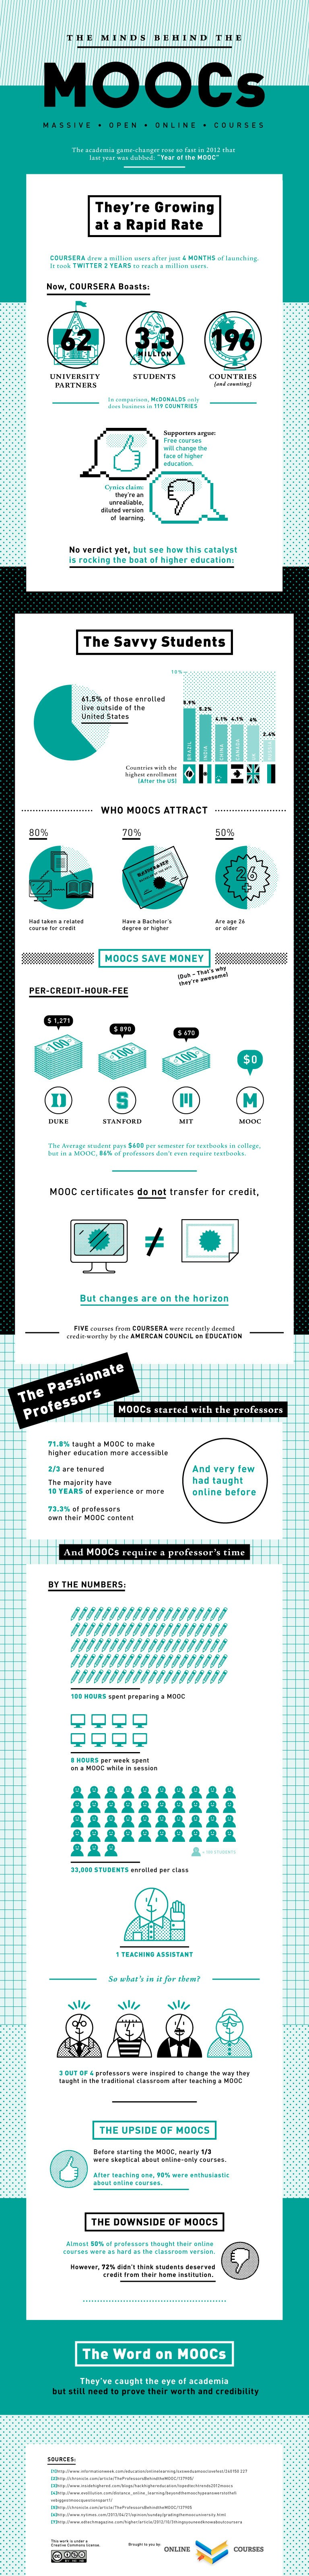 The-Minds-Behind-The-MOOCs